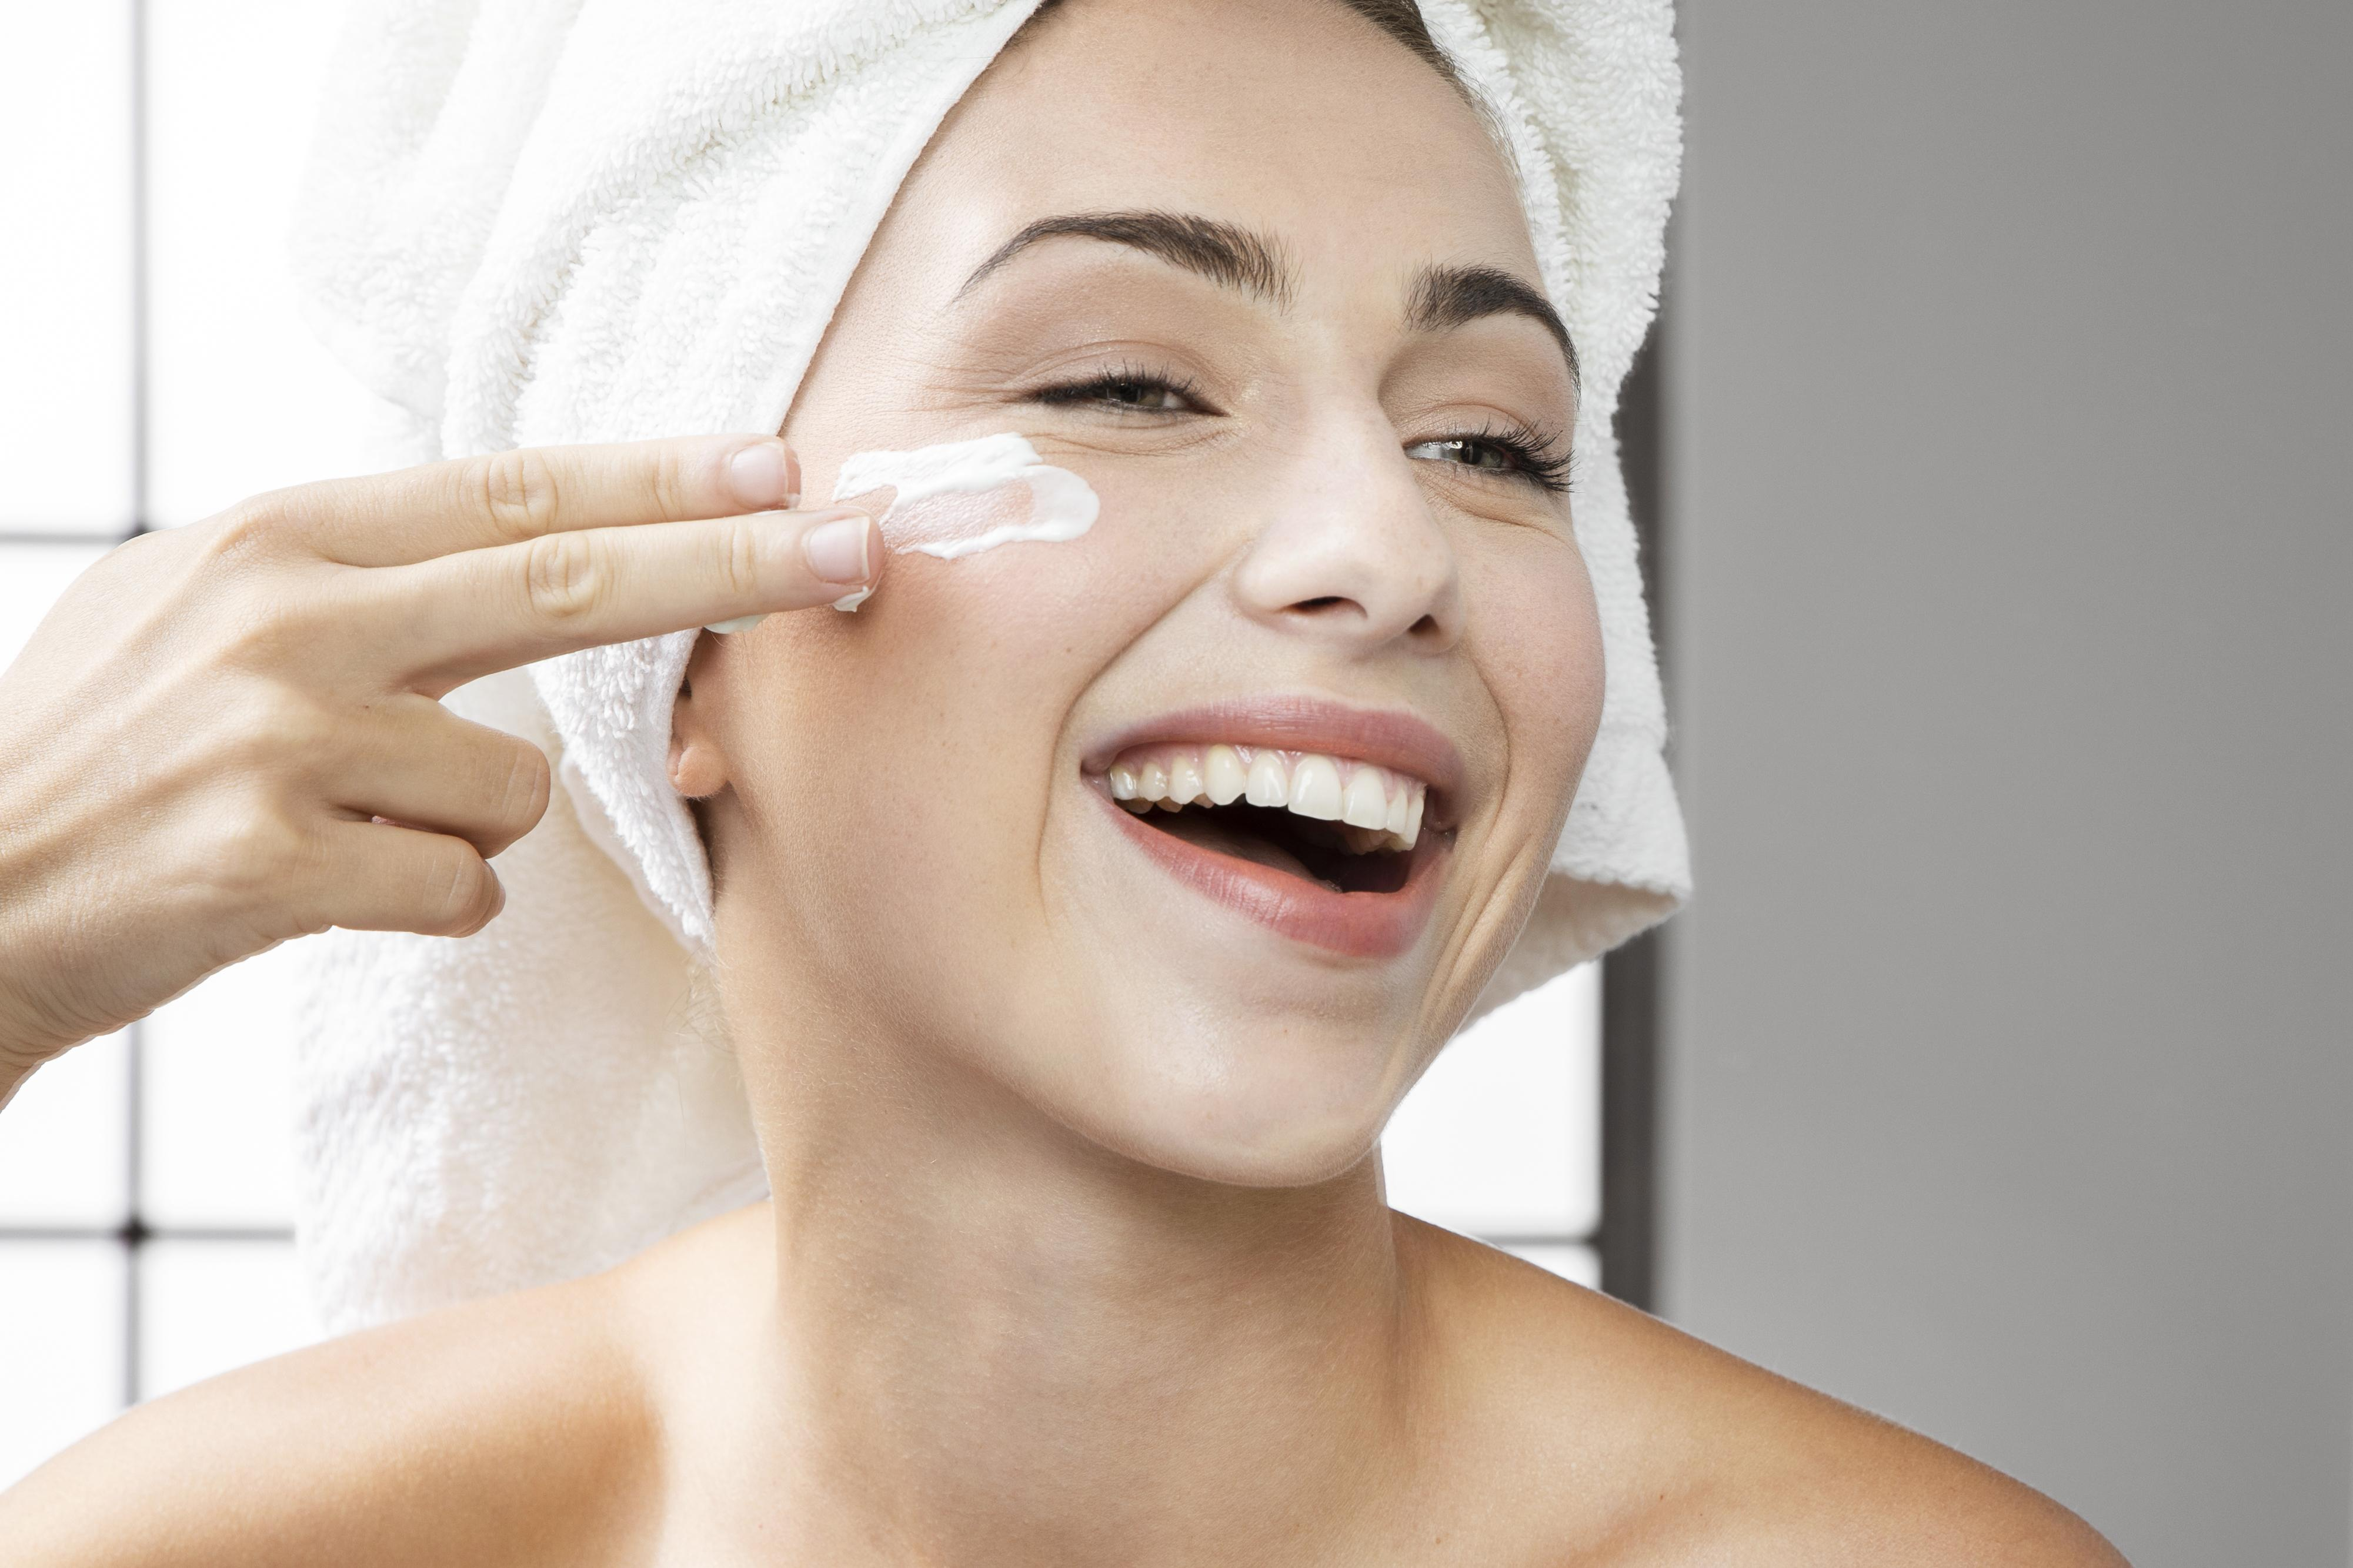 Are skincare products worth the investment